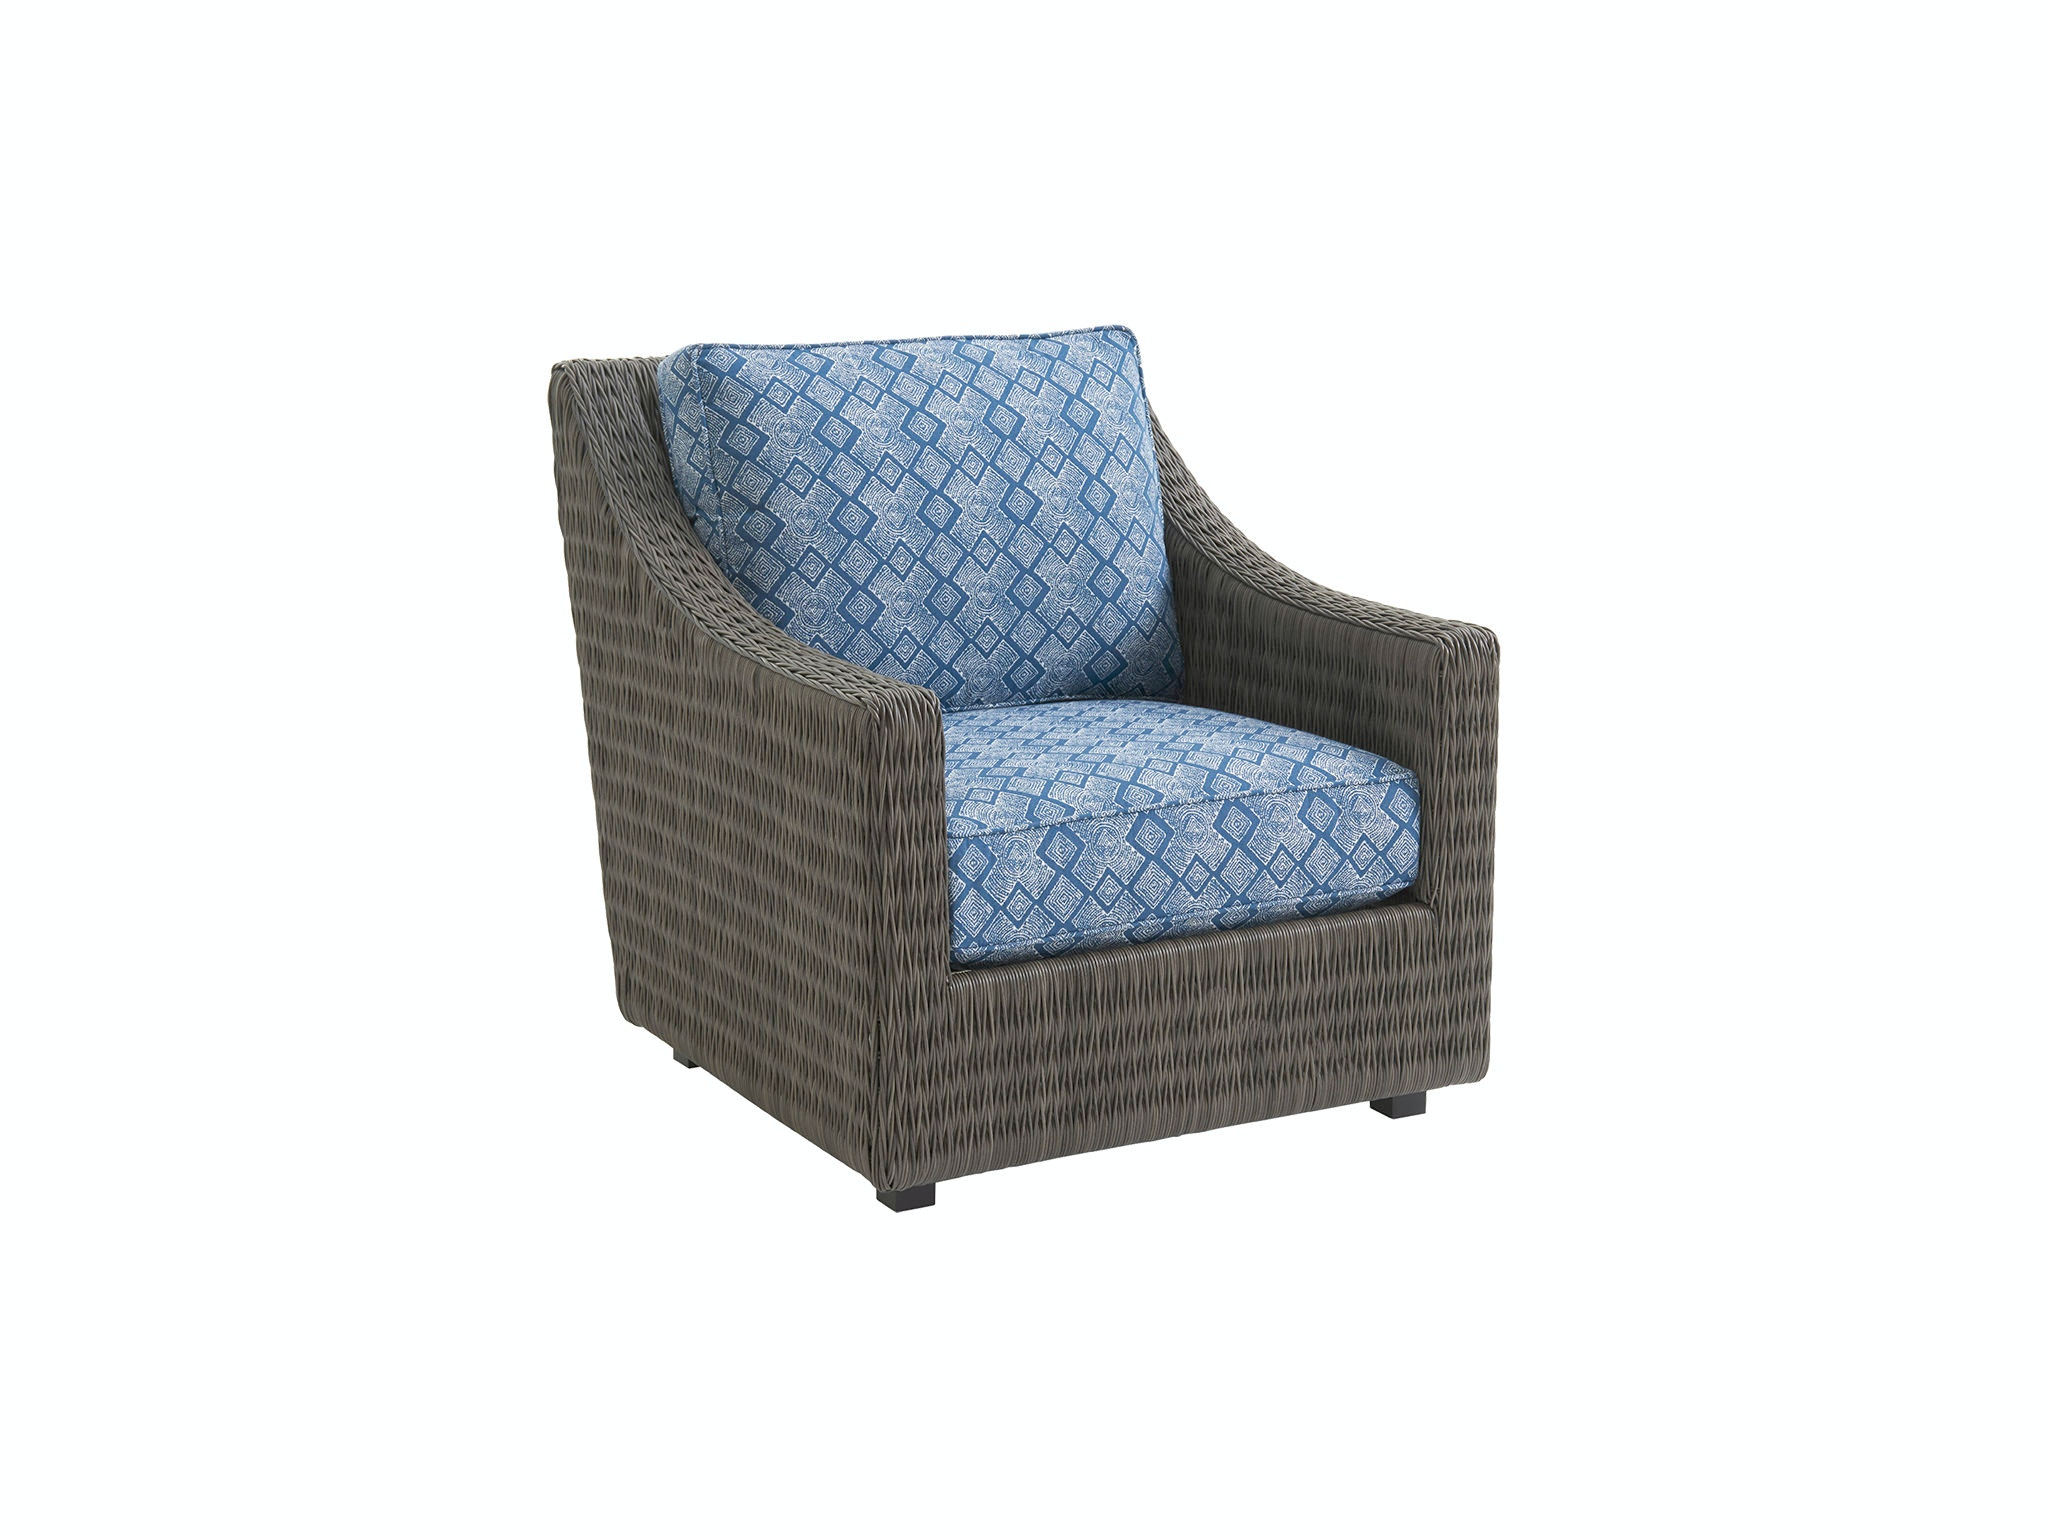 Tommy Bahama Outdoor Living Lounge Chair 3900 11